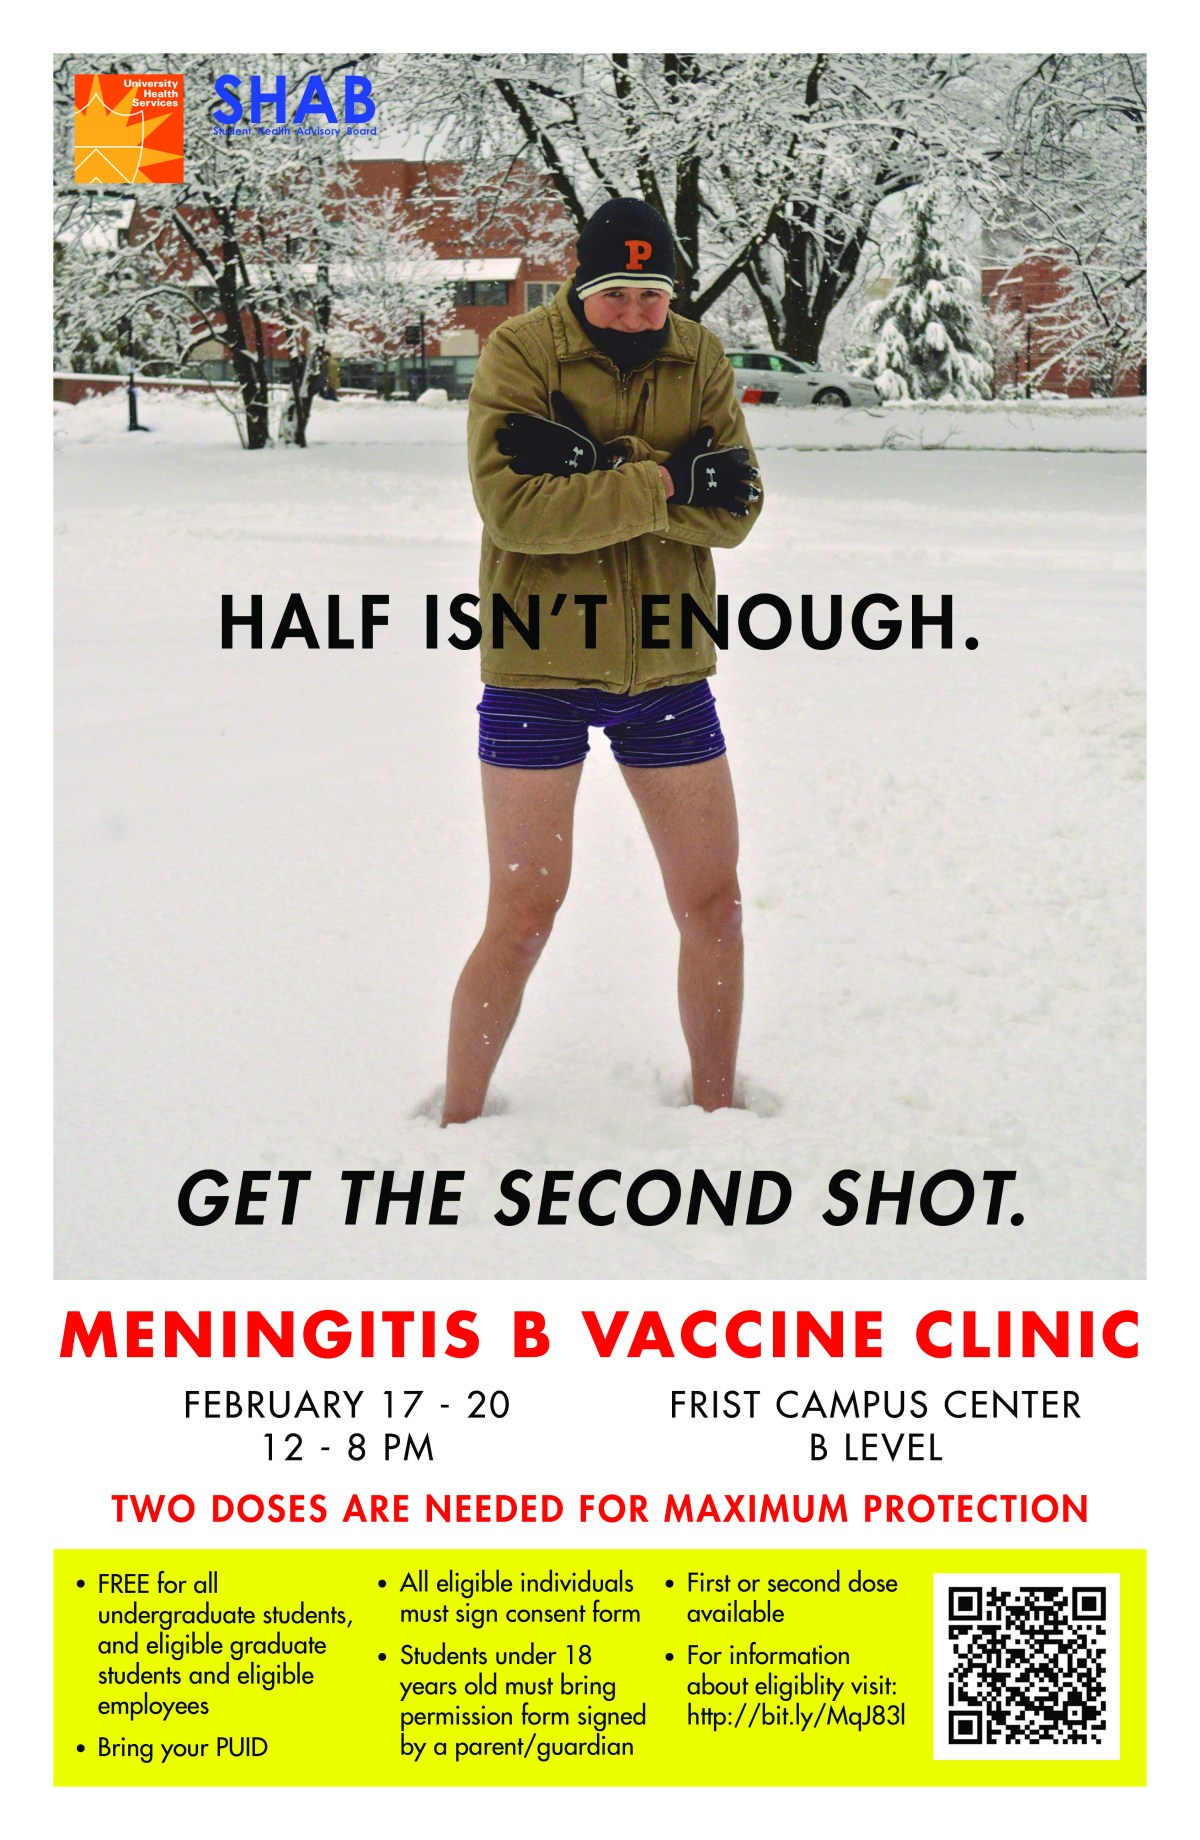 MenB vaccines are routinely given during outbreaks on college campuses.